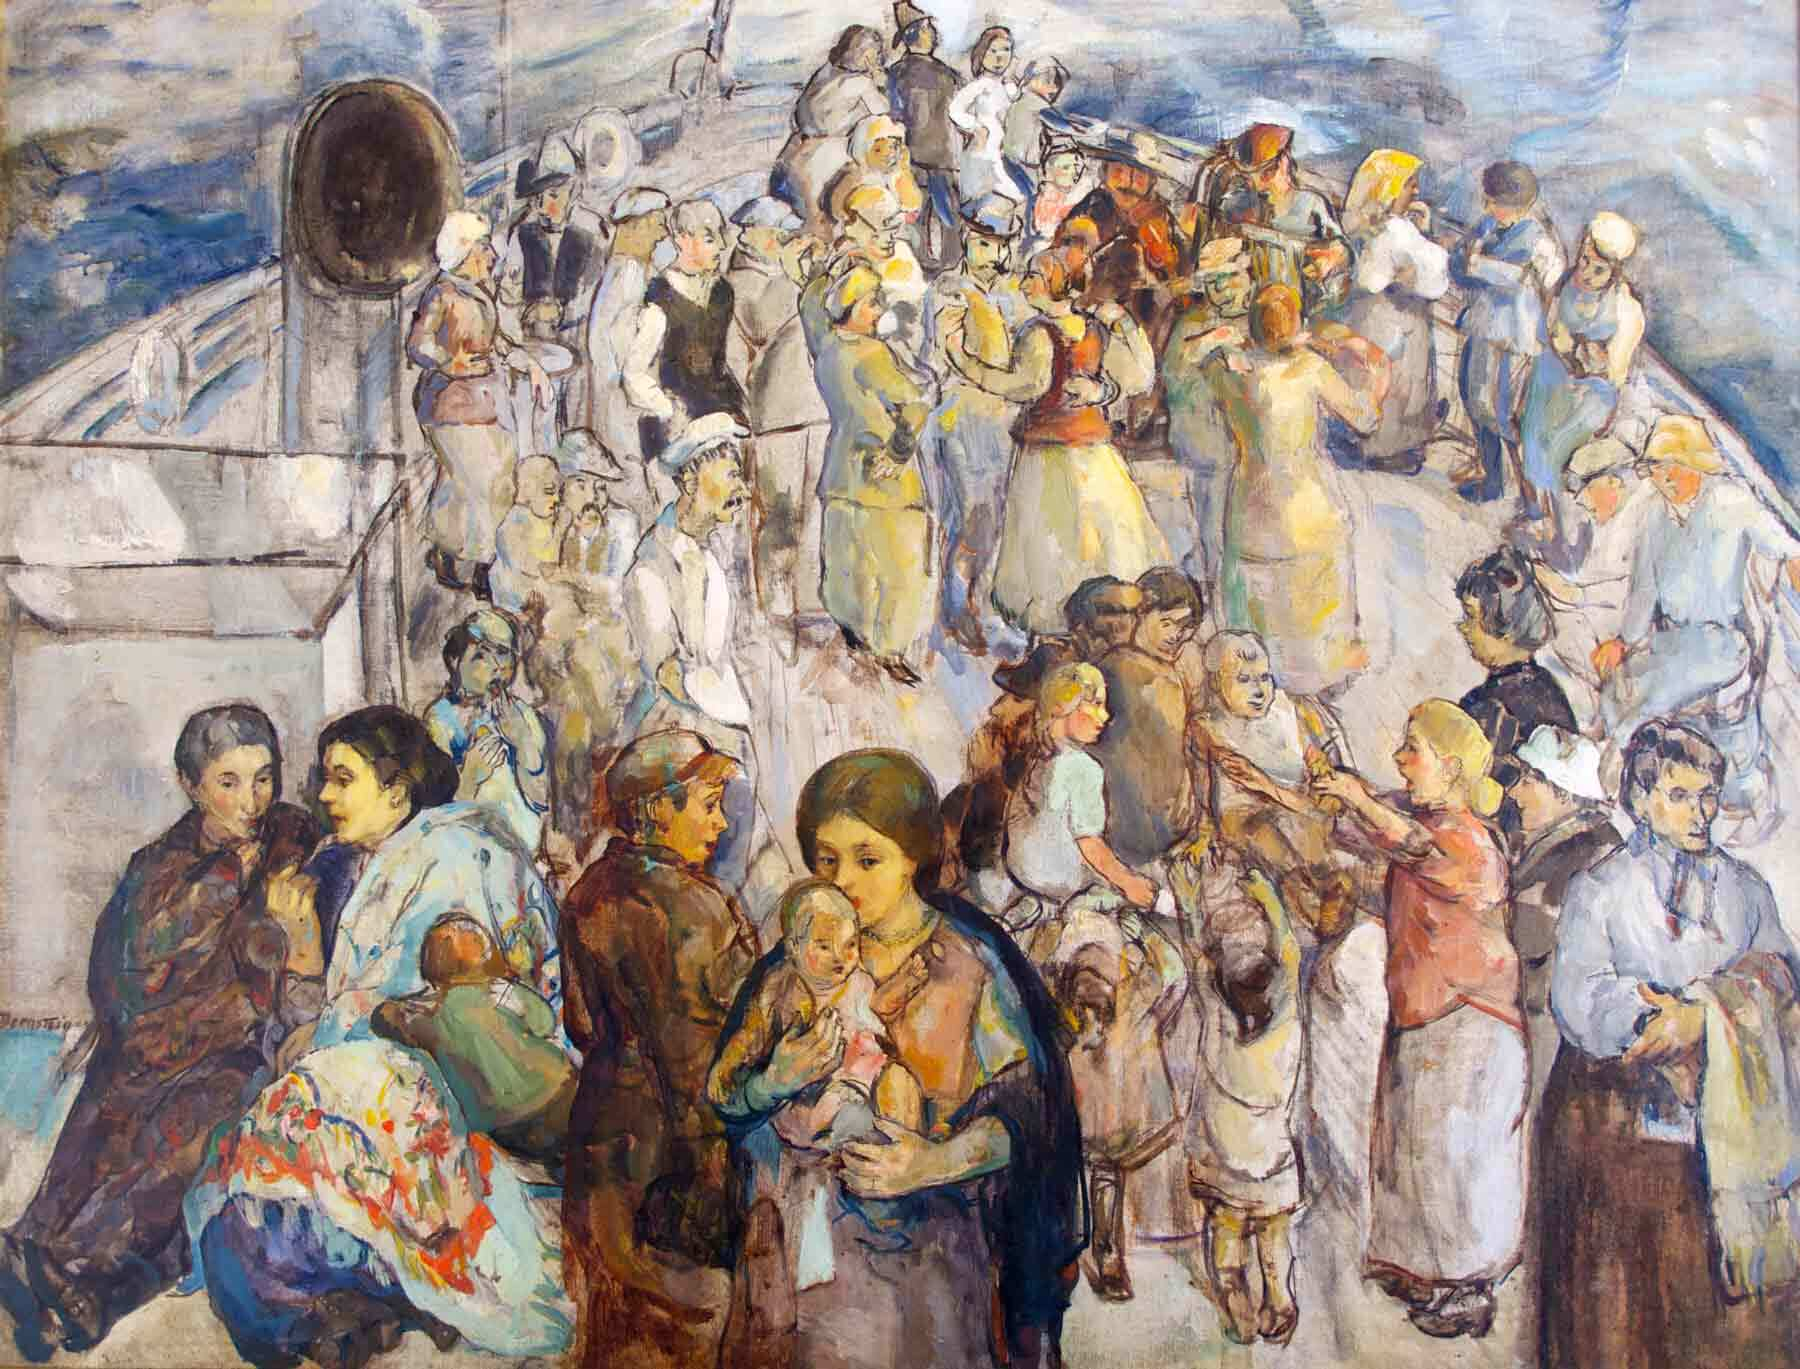 Theresa Bernstein (1890-2002). The Immigrants, 1923. Oil on canvas. Thomas and Karen Buckley. Image courtesy of Woodmere Art Museum